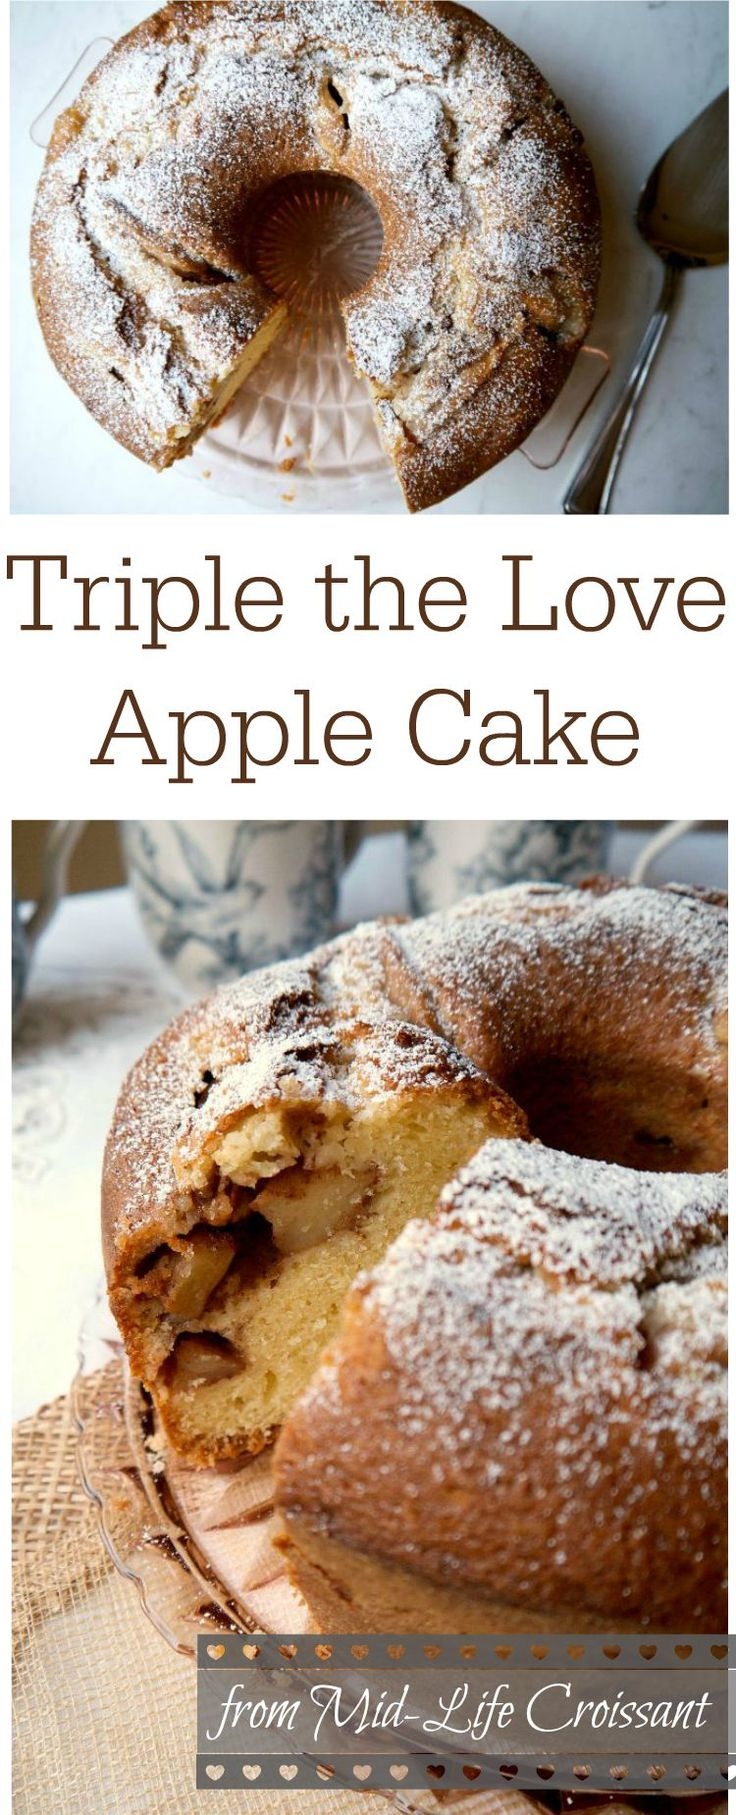 Traditional apple cake recipe with a moist crumb and sweet strains of cinnamon throughout. via @midlifecroissnt